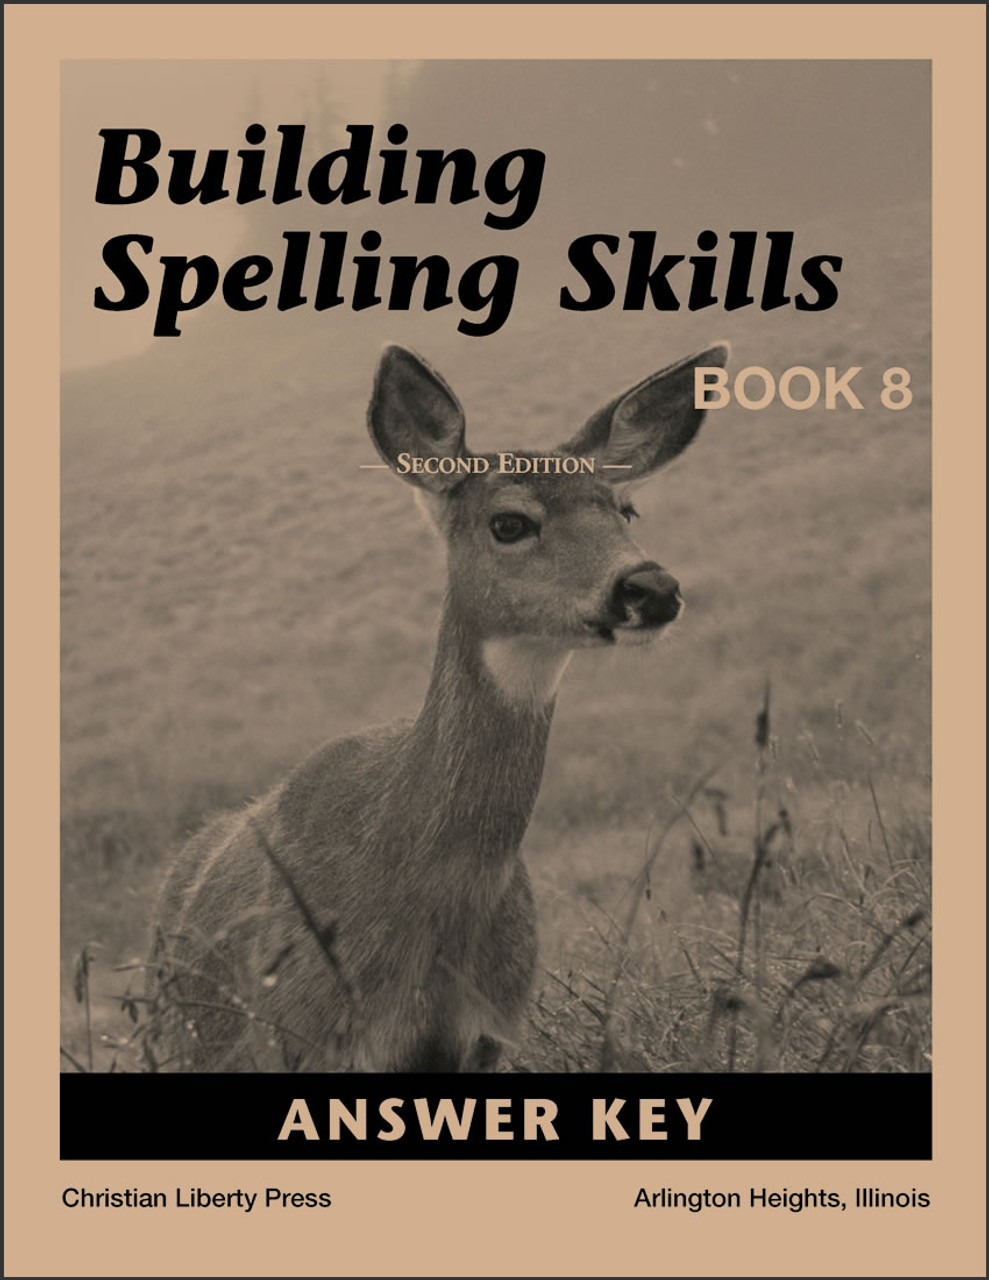 Building Spelling Skills: Book 8, 2nd edition - Answer Key